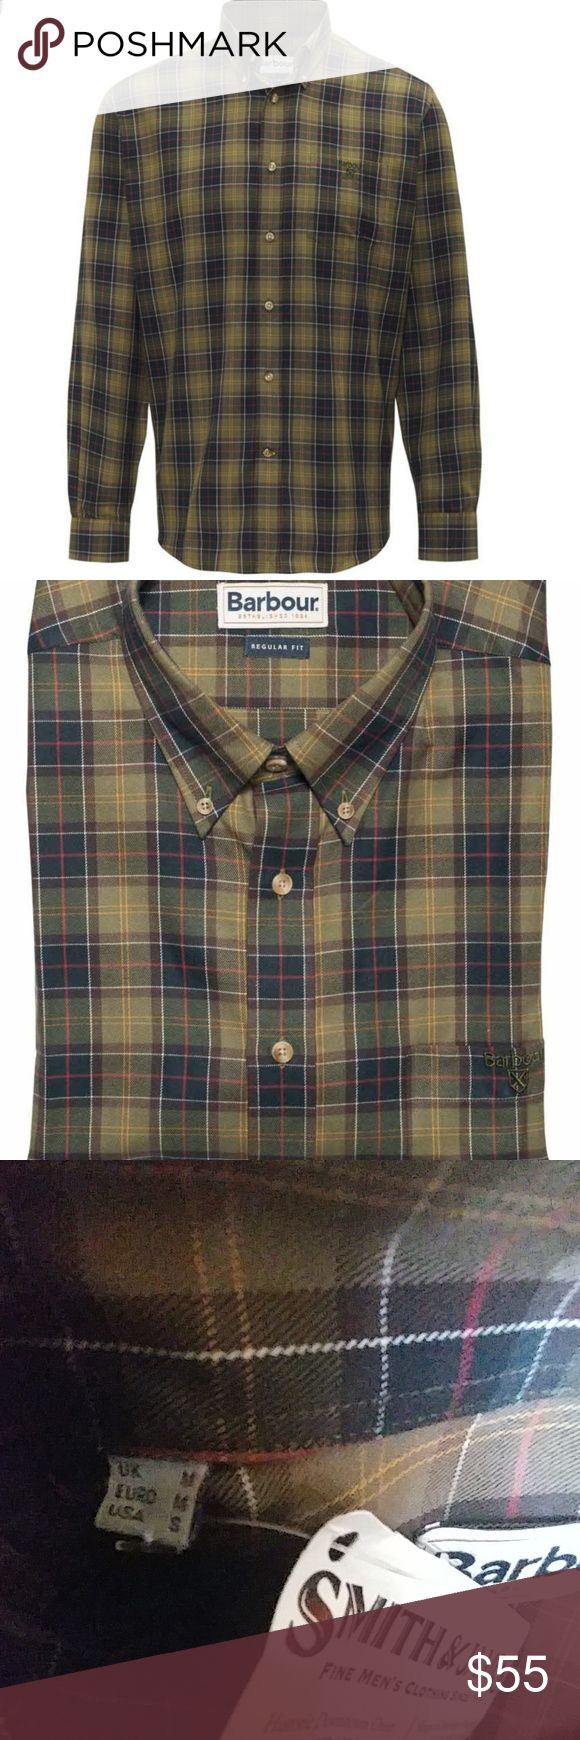 1day Sale Barbour Tartan classic Reg. Fit size S. New with Tags. Awesome shirt :) Barbour Shirts